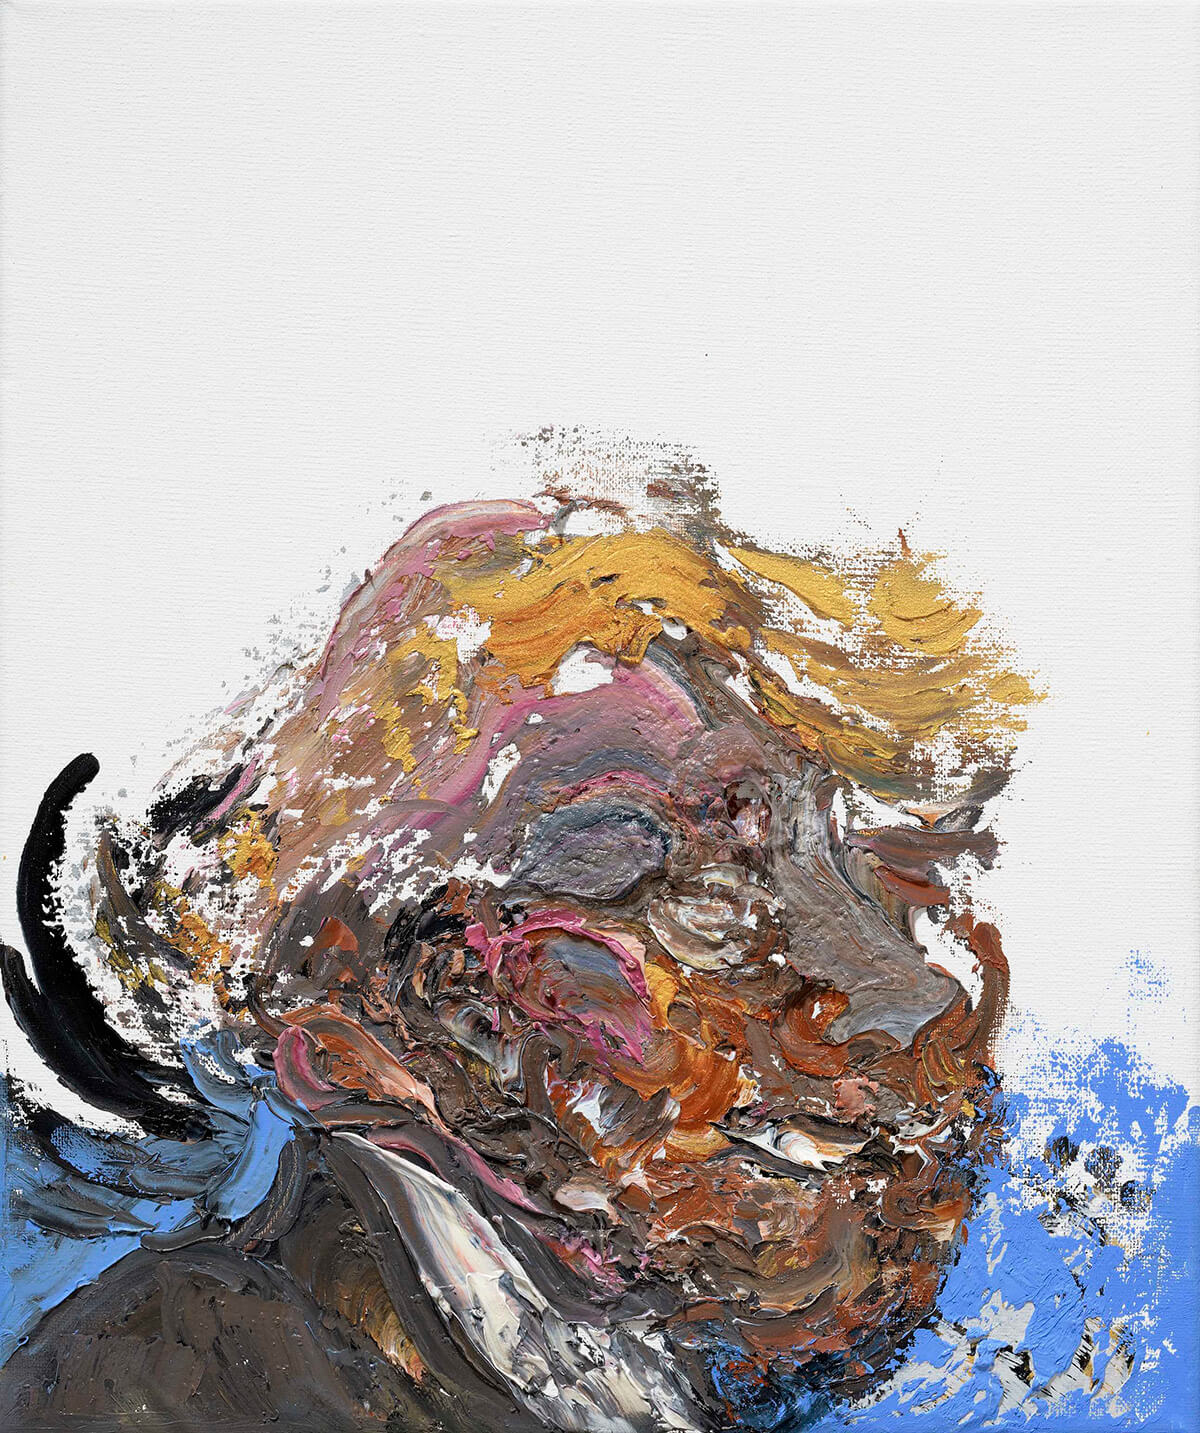 Abstract oil painting of Donald Trump, ridiculing the US president